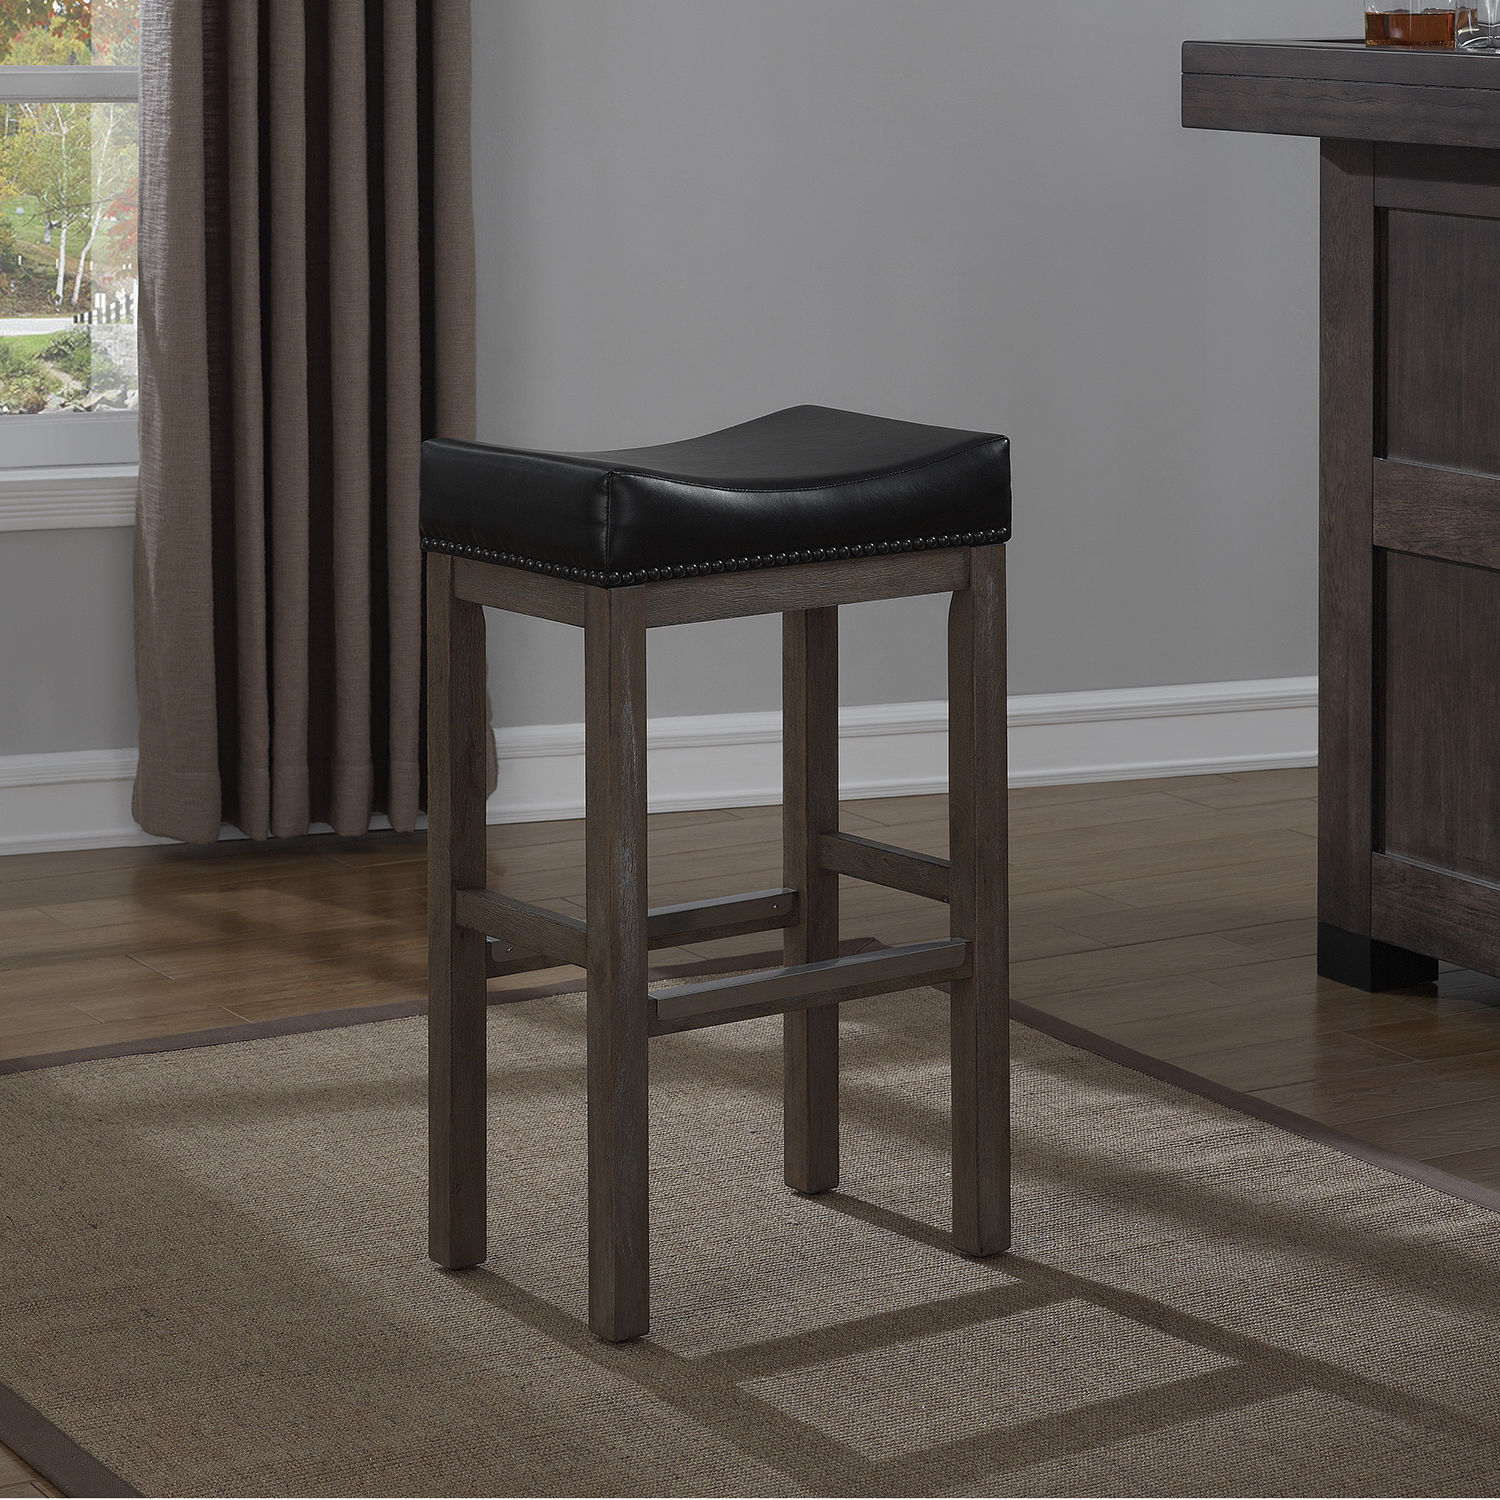 Walker Creek Saddle Seat Bar Stool Gray Driftwood Black